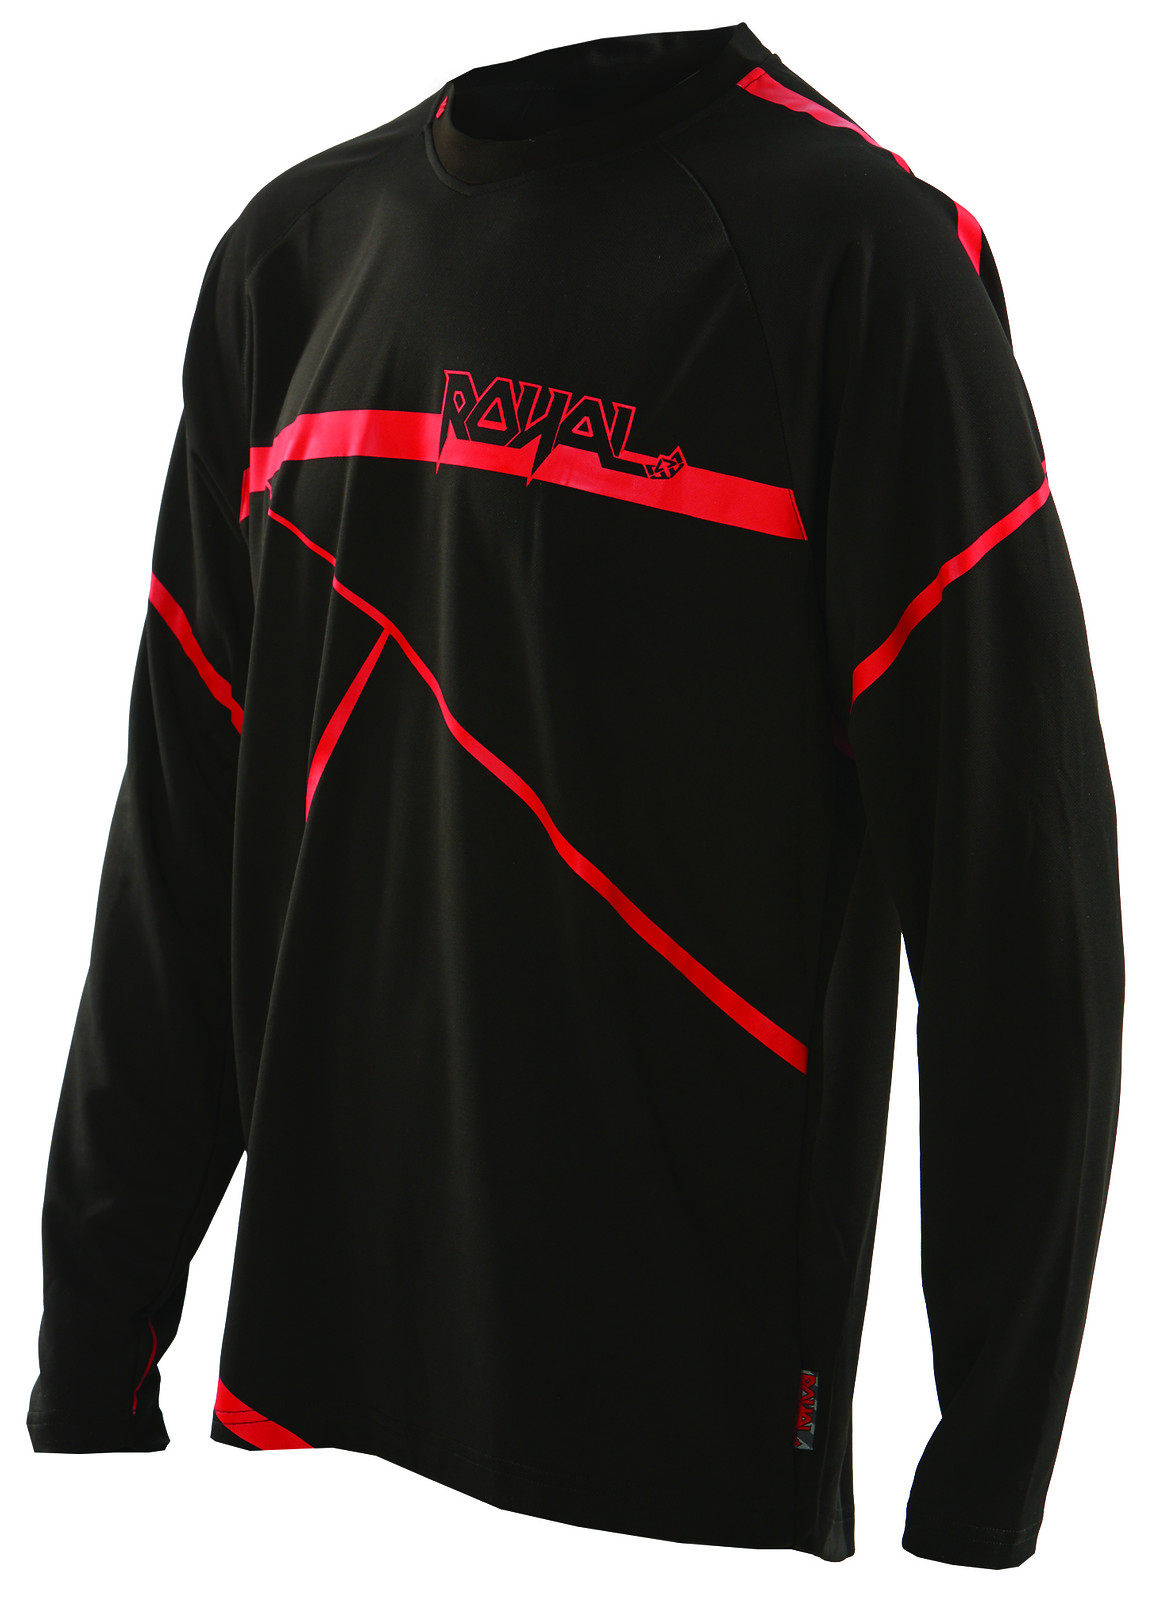 Royal 2014 Slice Ride LS Jersey slice jersey black red f